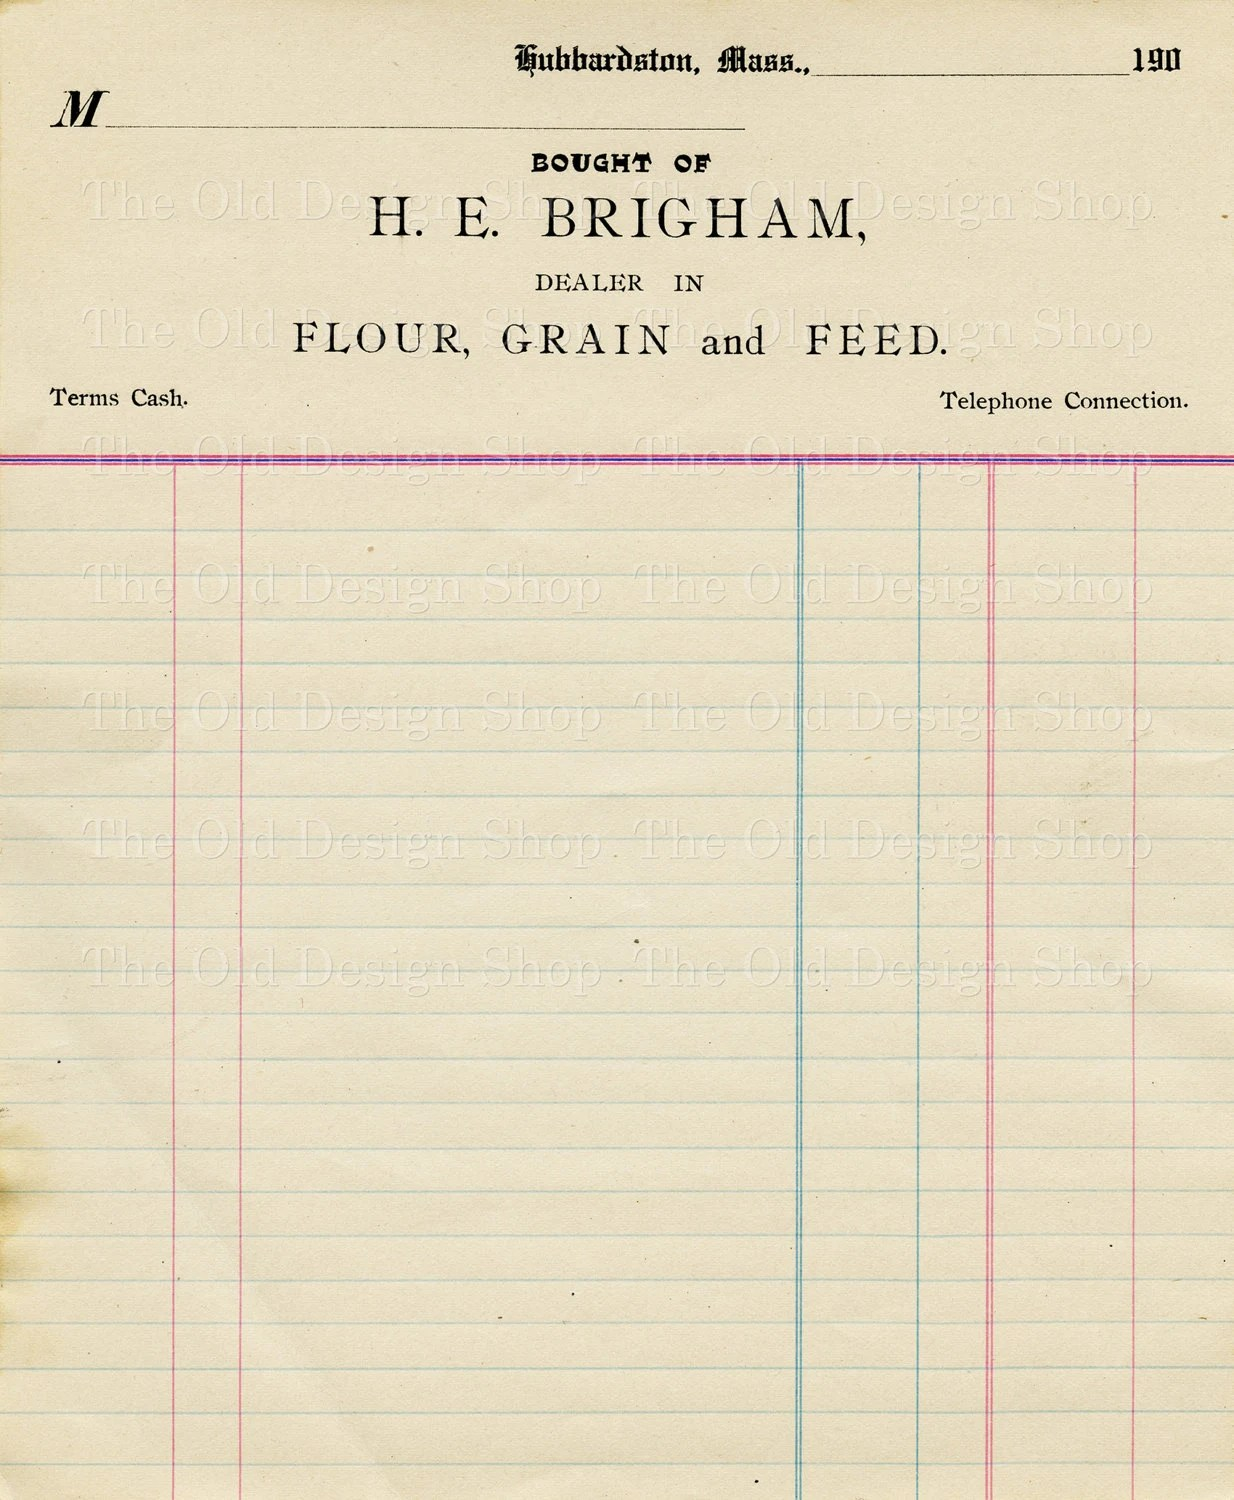 Vintage Accounting Ledger Page Printable Ephemera Brigham Flour